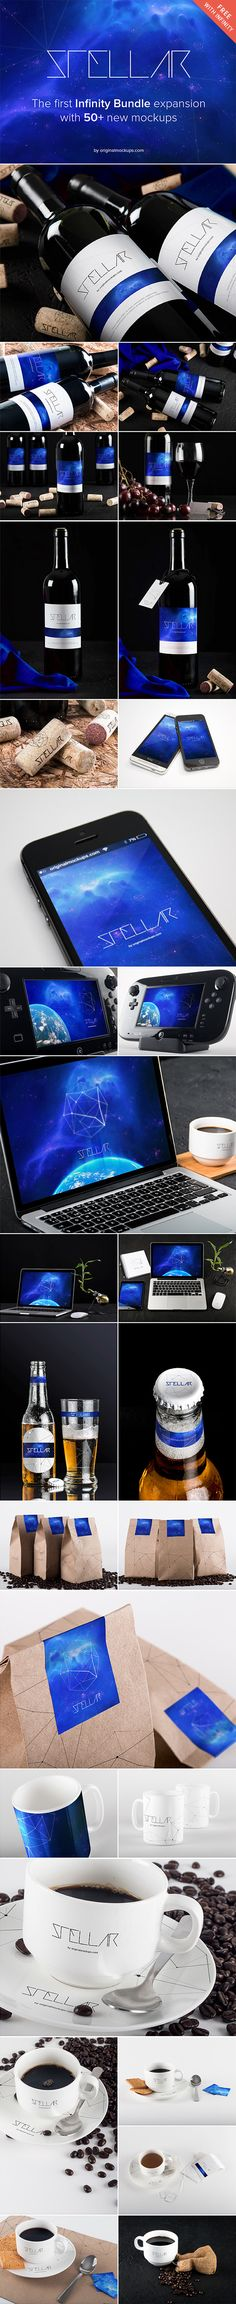 Stellar Mockups Bundle | GraphicBurger